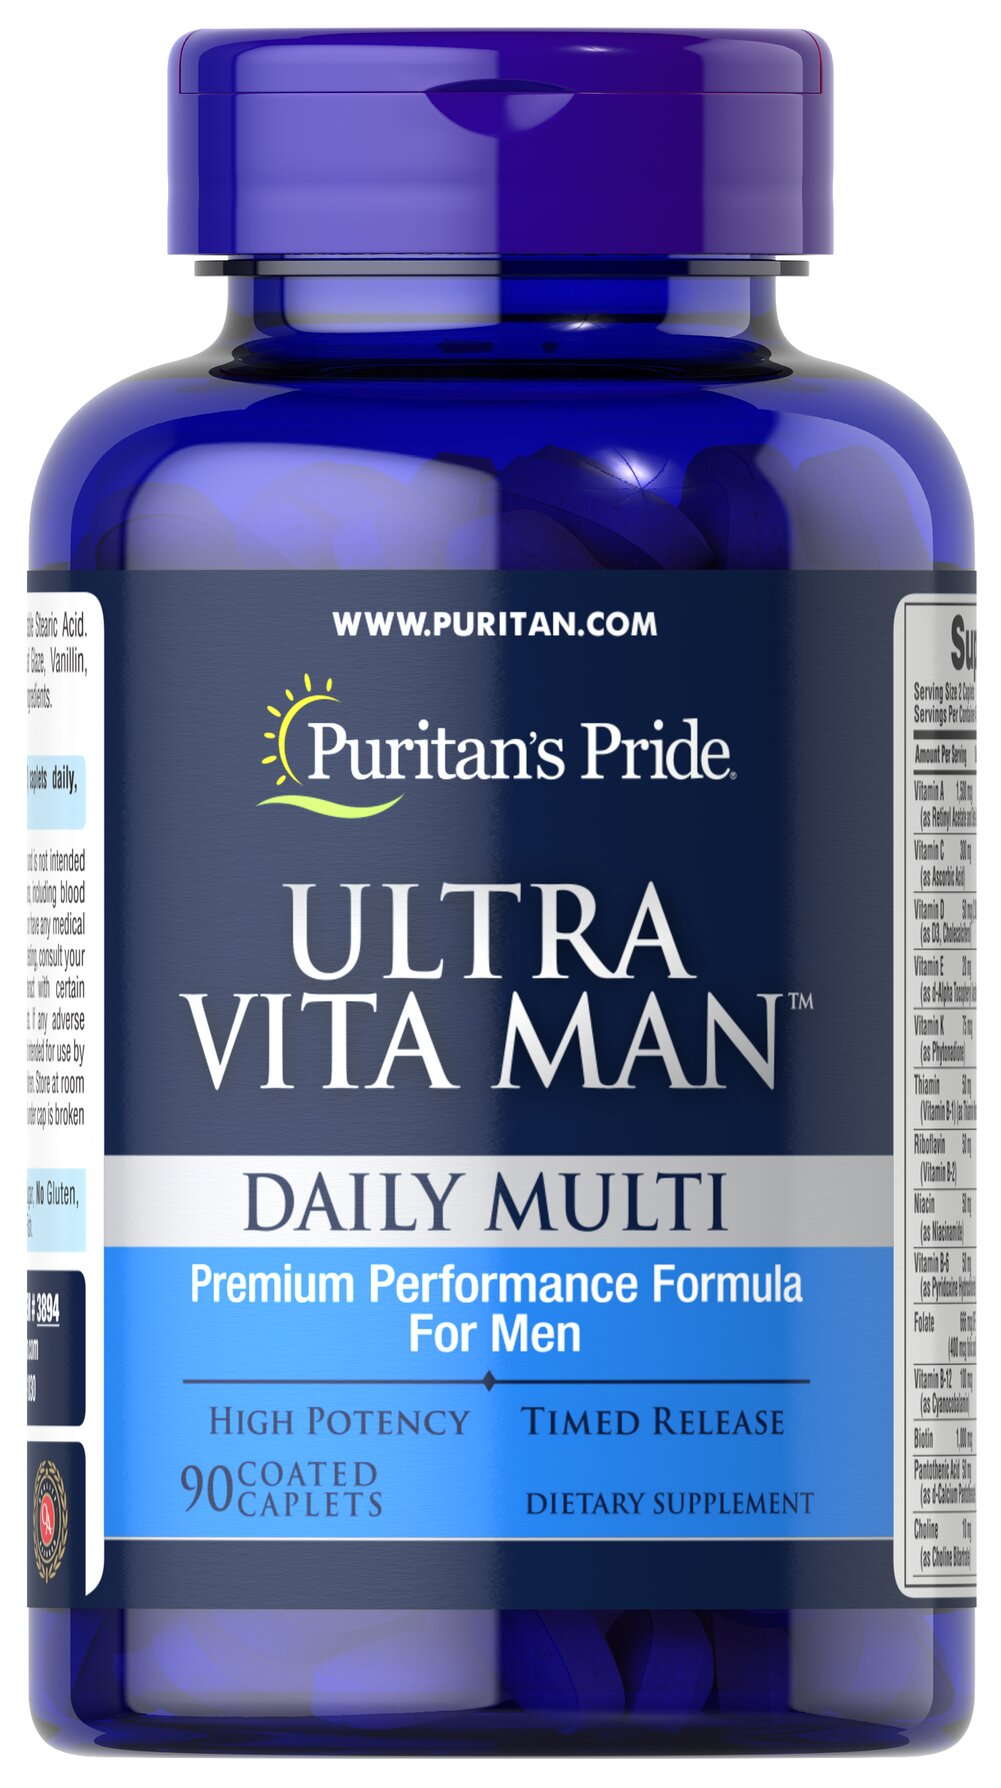 Ultra Vita Man™ Time Release <p>This time release multivitamin  delivers vitamins and minerals shown to be beneficial to men's overall wellness. From antioxidant and immune support to cardiovascular health, Ultra Vita Man is ideal for today's on-the-go men!**</p> 90 Caplets  $27.99